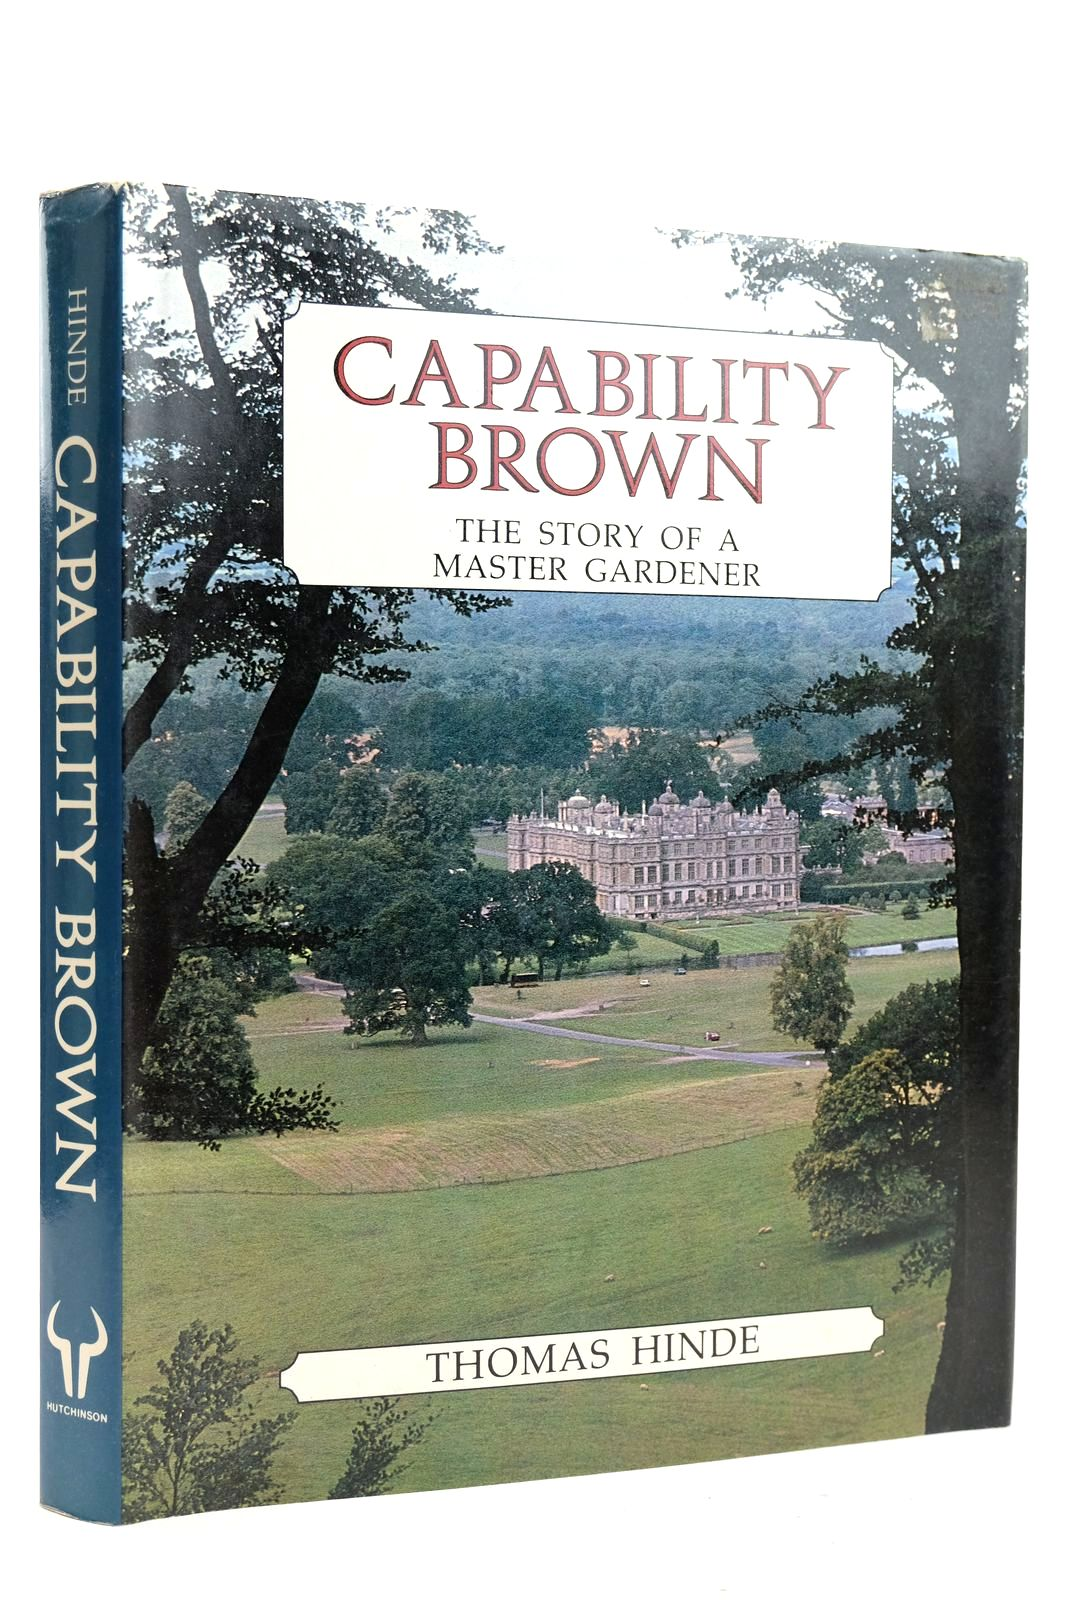 Photo of CAPABILITY BROWN THE STORY OF A MASTER GARDENER- Stock Number: 2132663